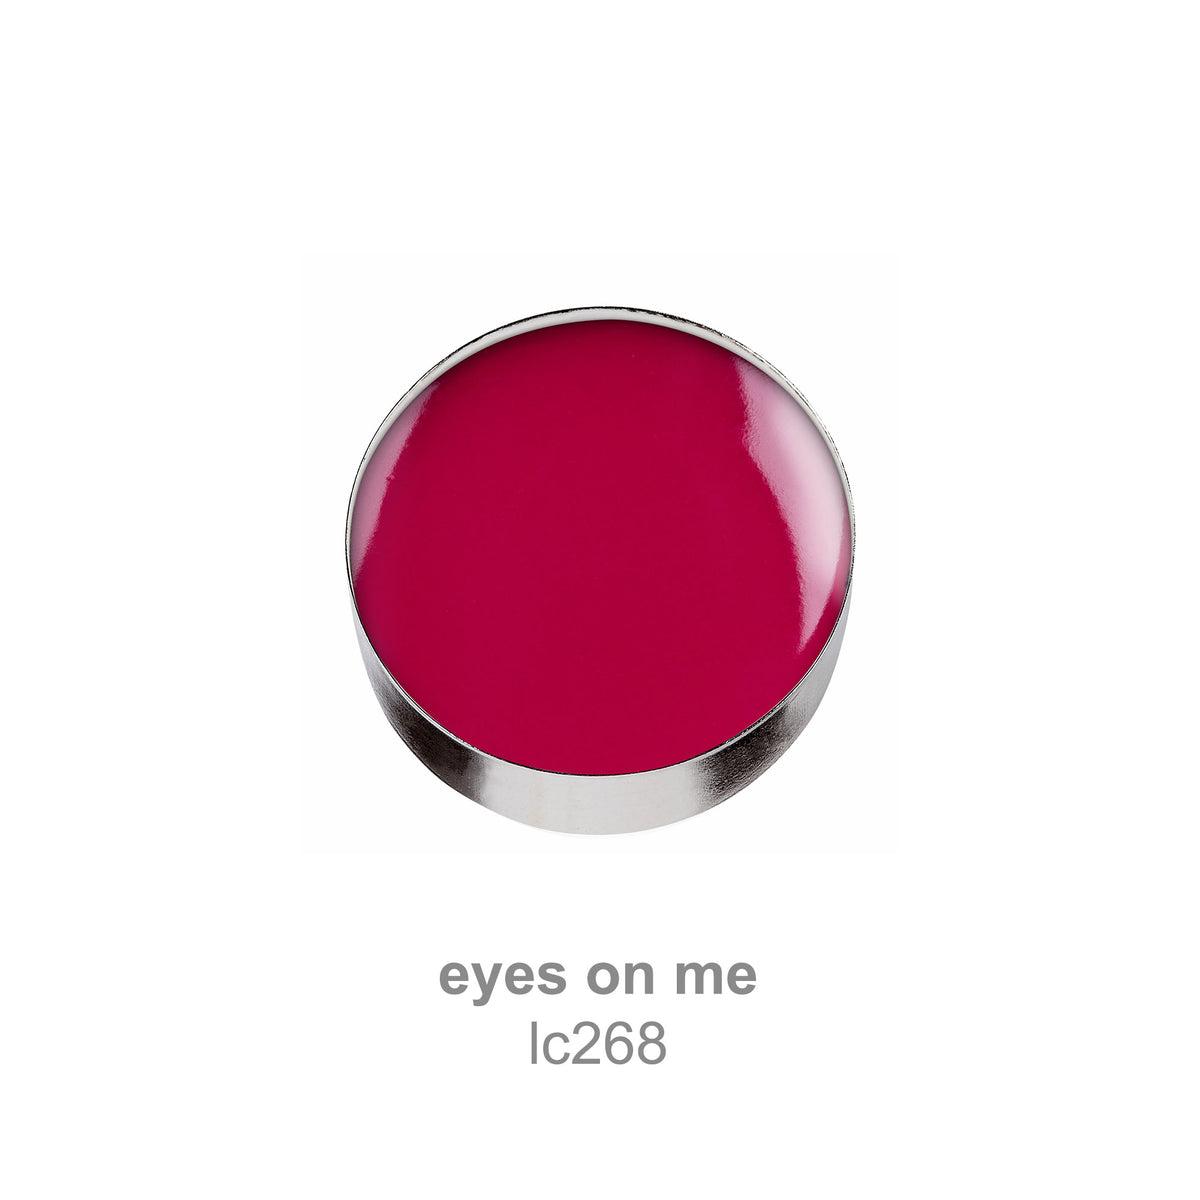 eyes on me (lc268)